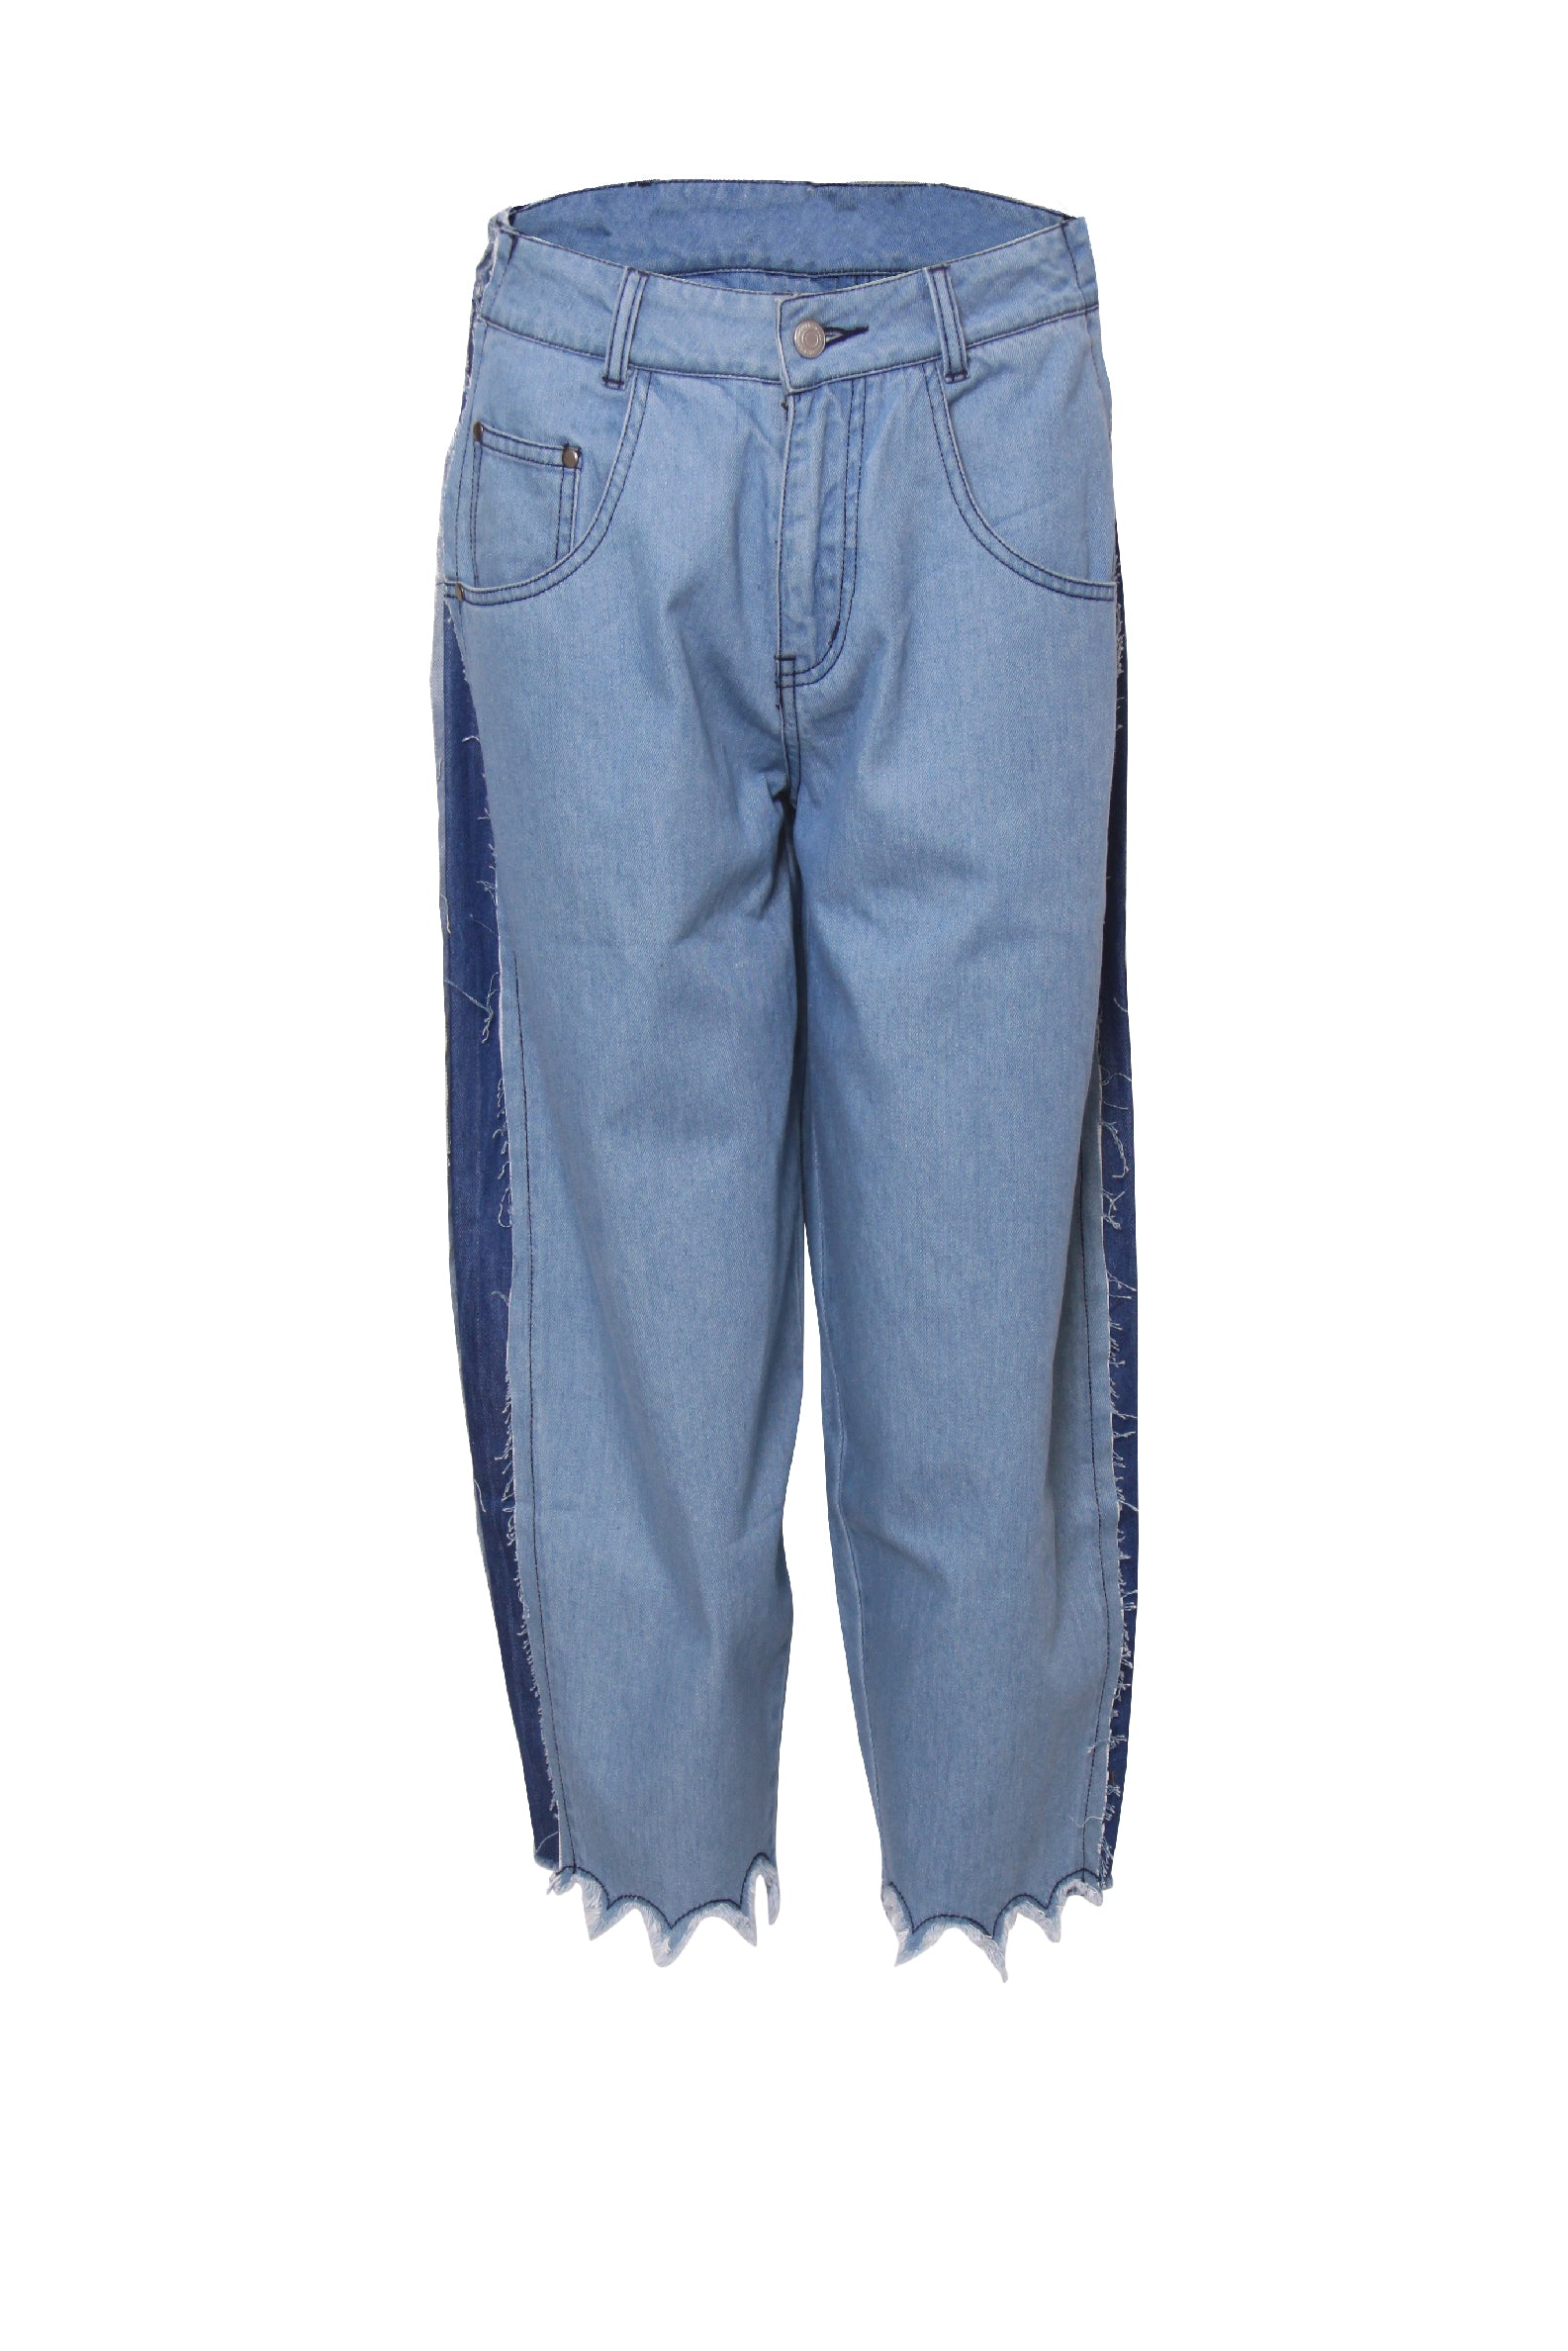 Waves Hem Vintage Mom Jean